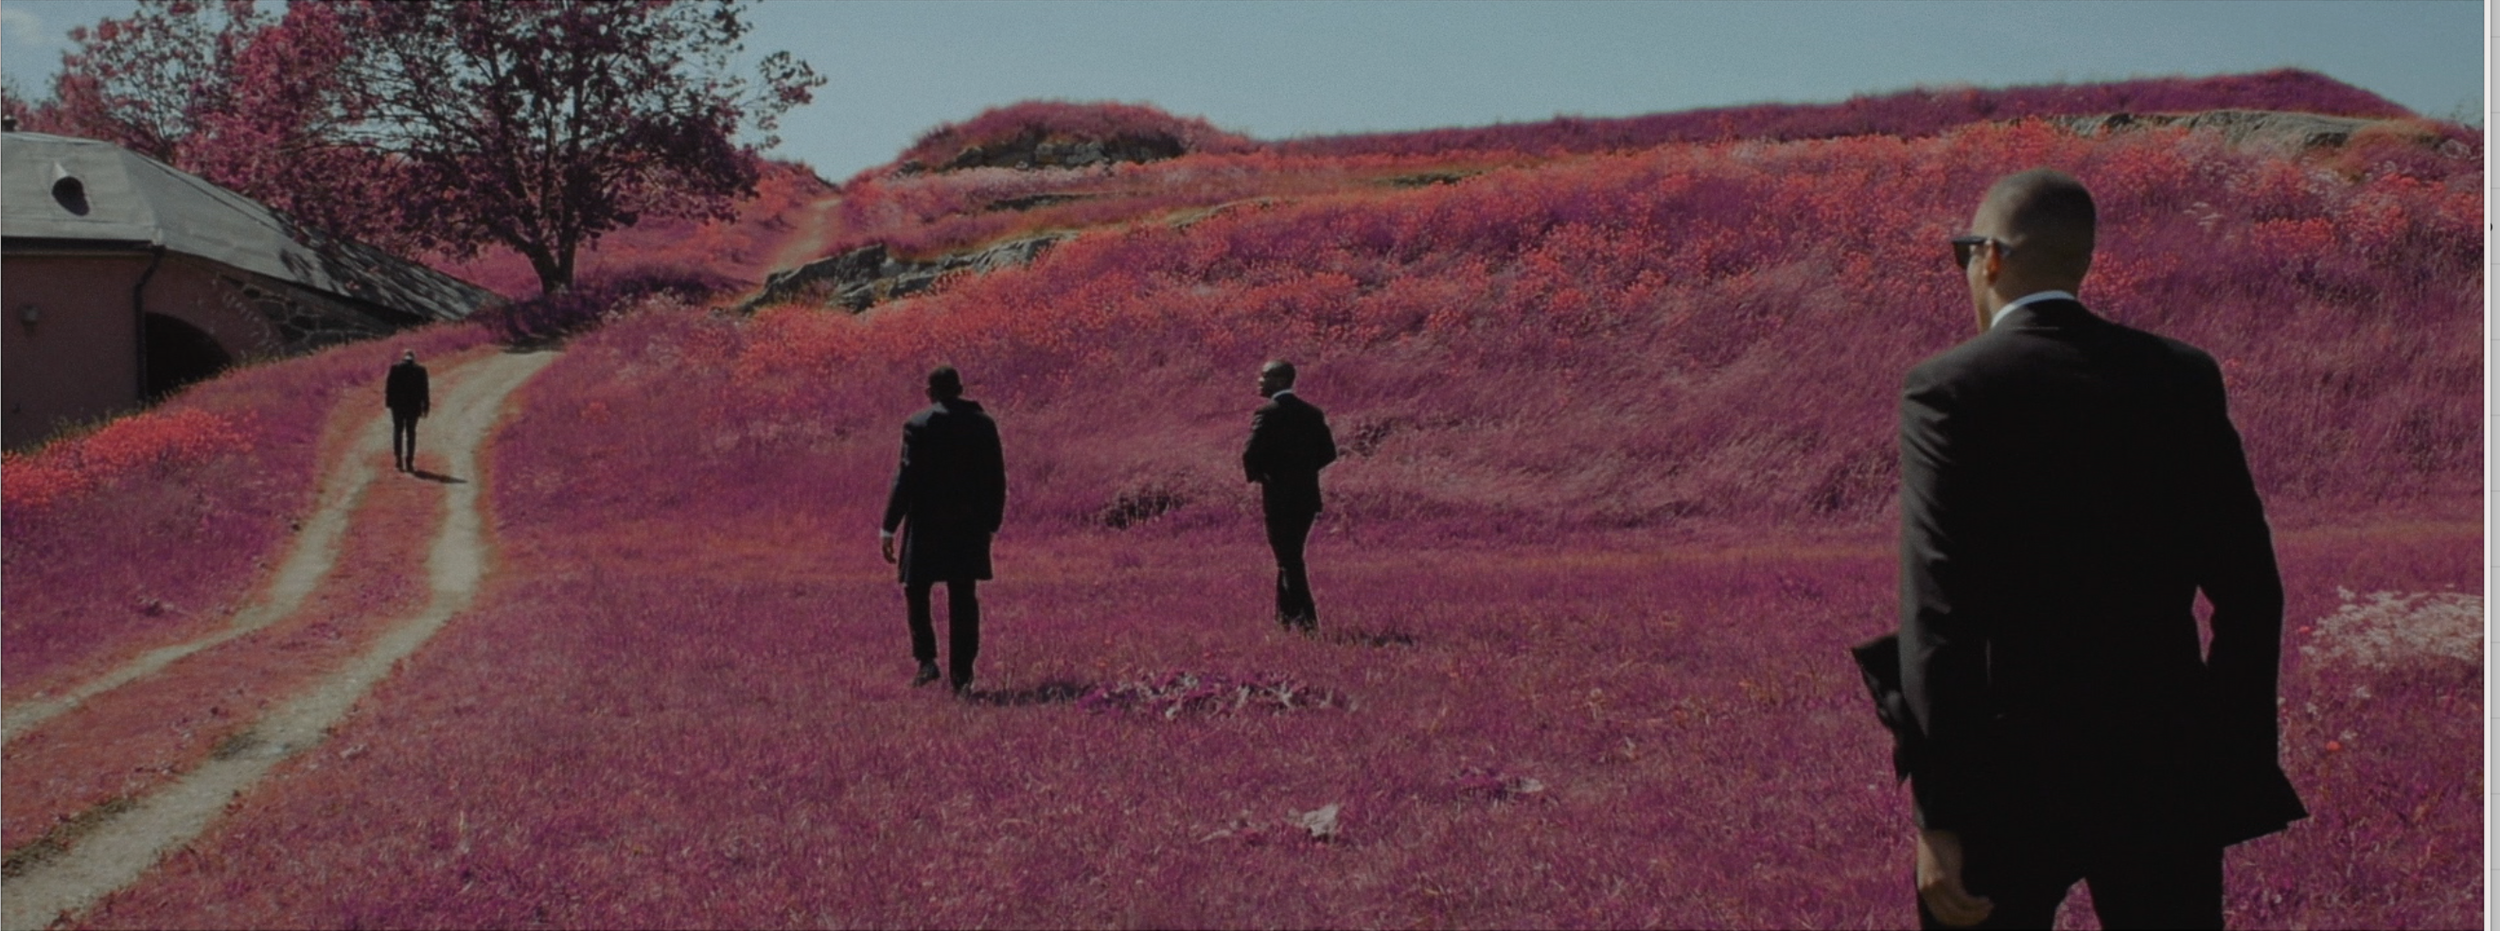 Still from  Levels (Stream Fast, Die Young)  by Gracias. Directed by Ezra Gould.